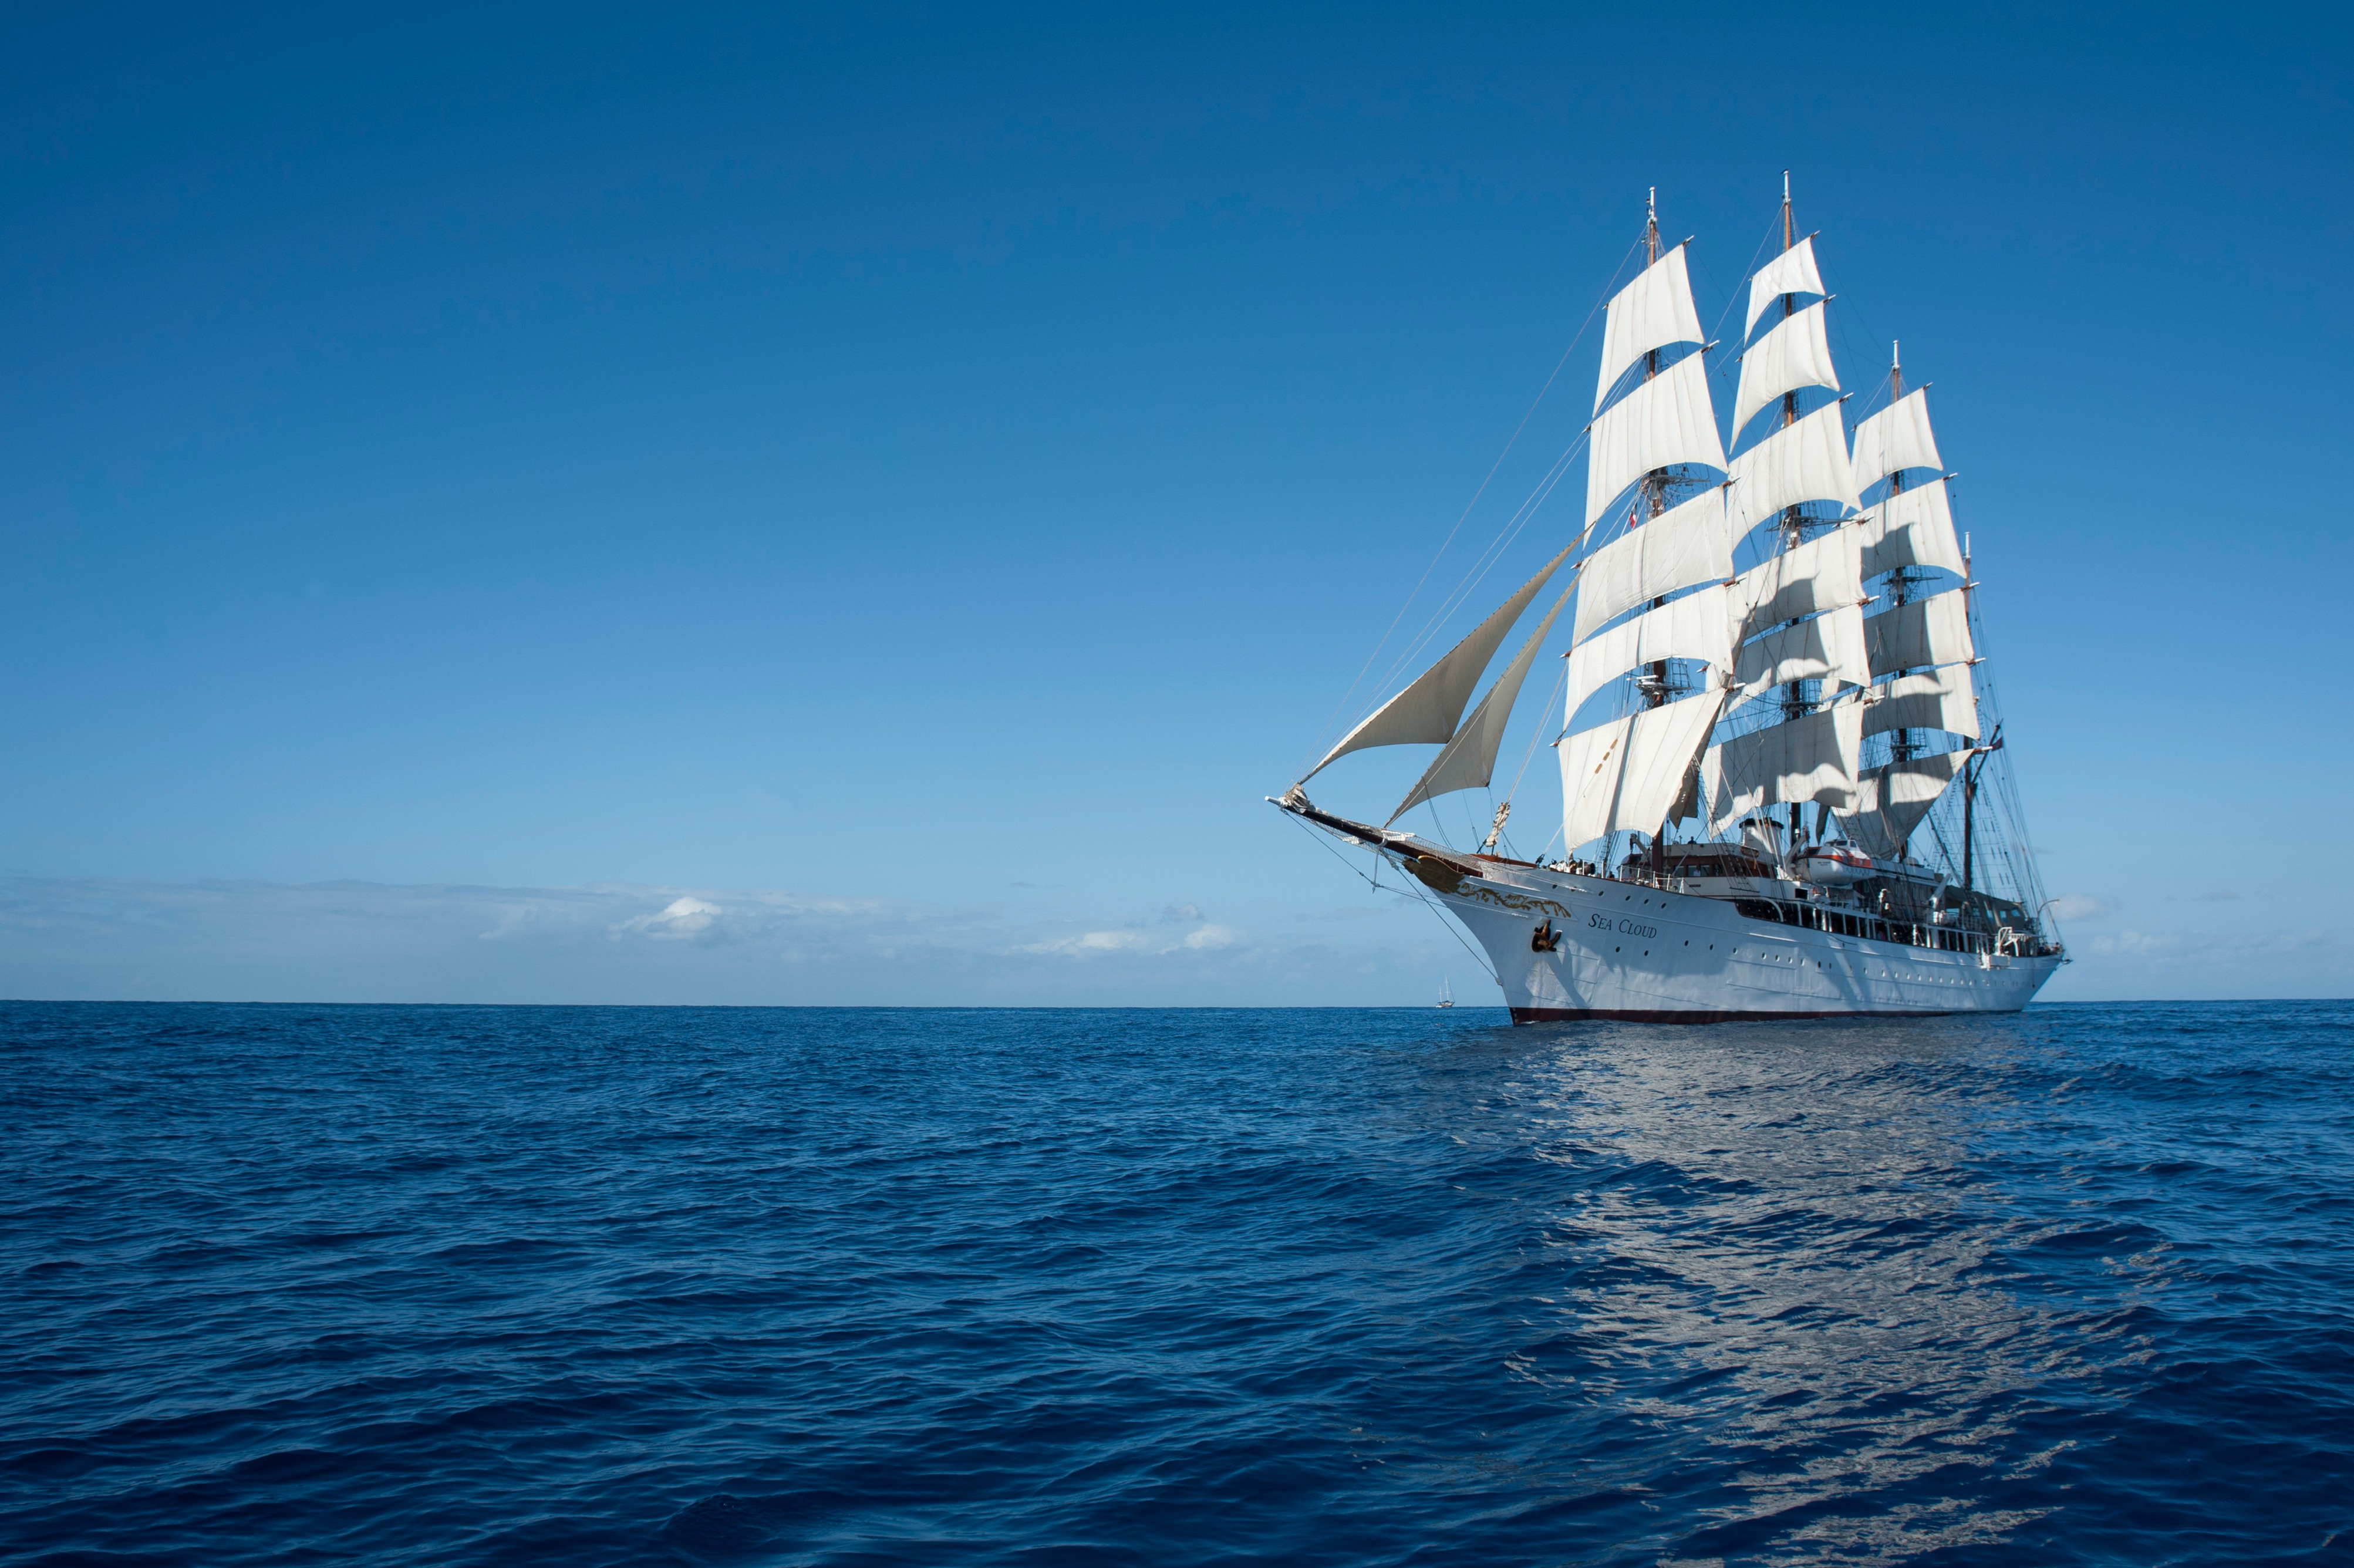 Sea Cloud at Sea